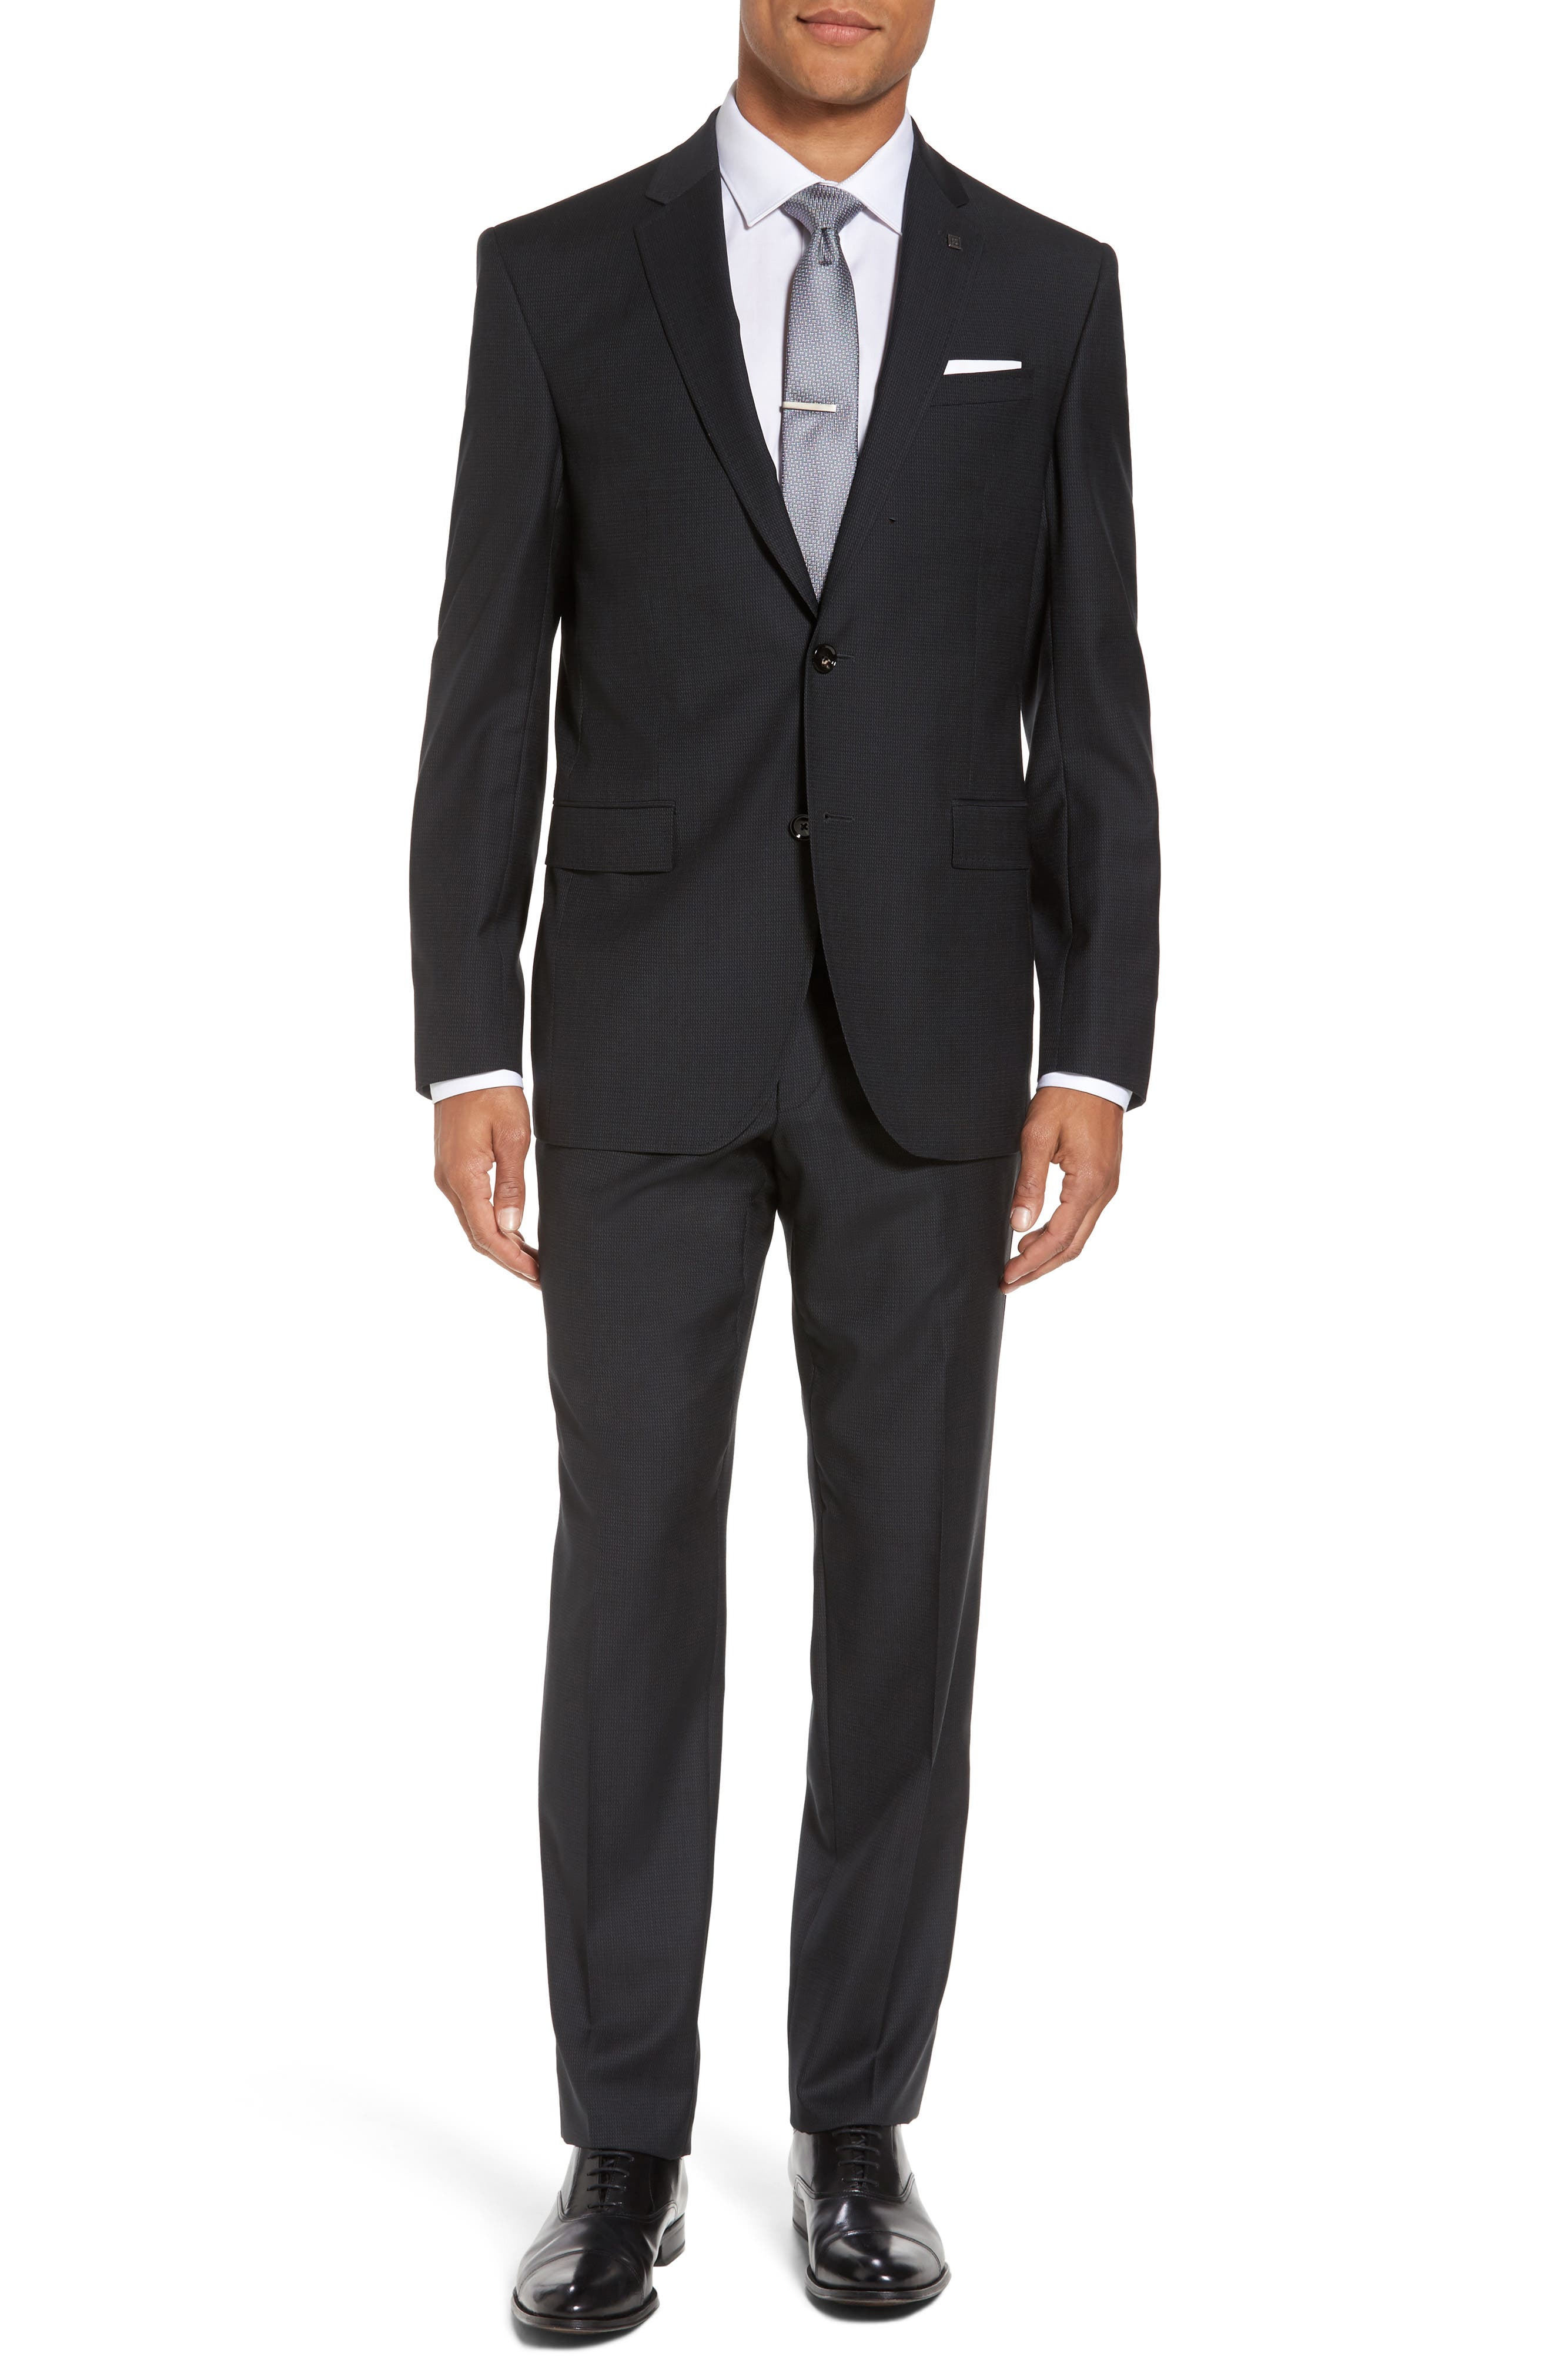 Jay Trim Fit Solid Wool Suit,                         Main,                         color, Black Charcoal